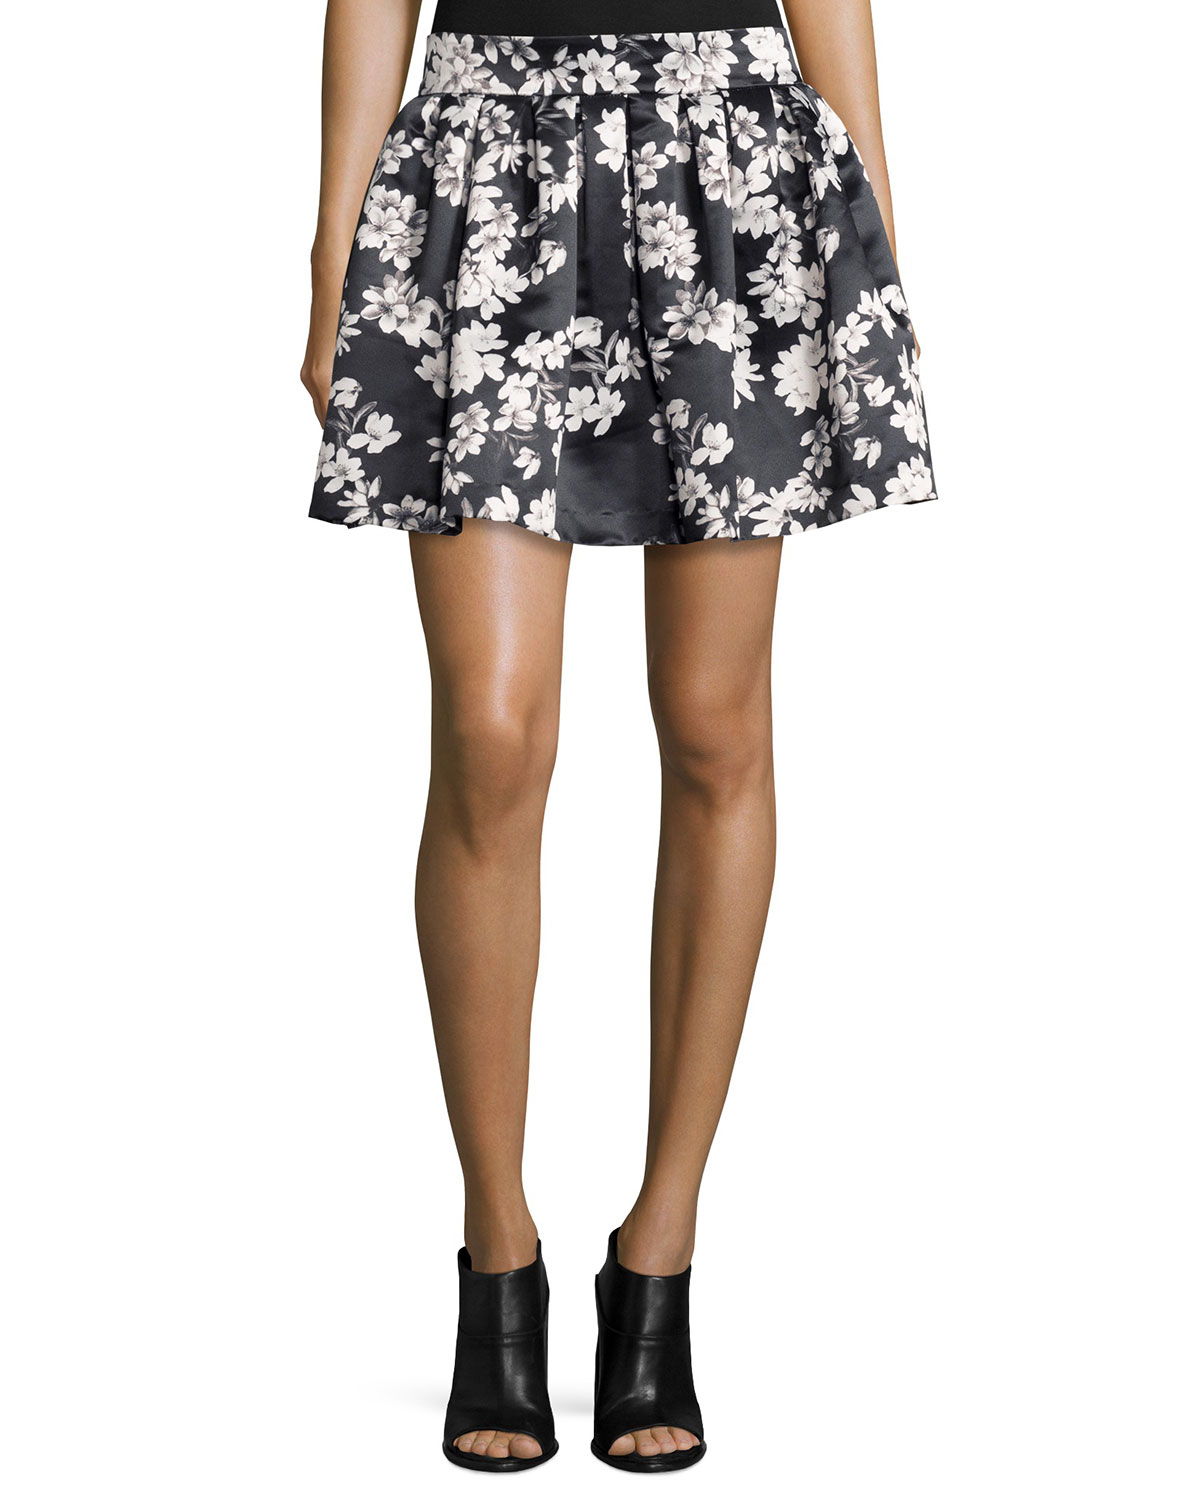 Alice + Olivia Fizer Southern Blossom Pleated A-Line Skirt, Black/White, Size: 12, Multi Colors